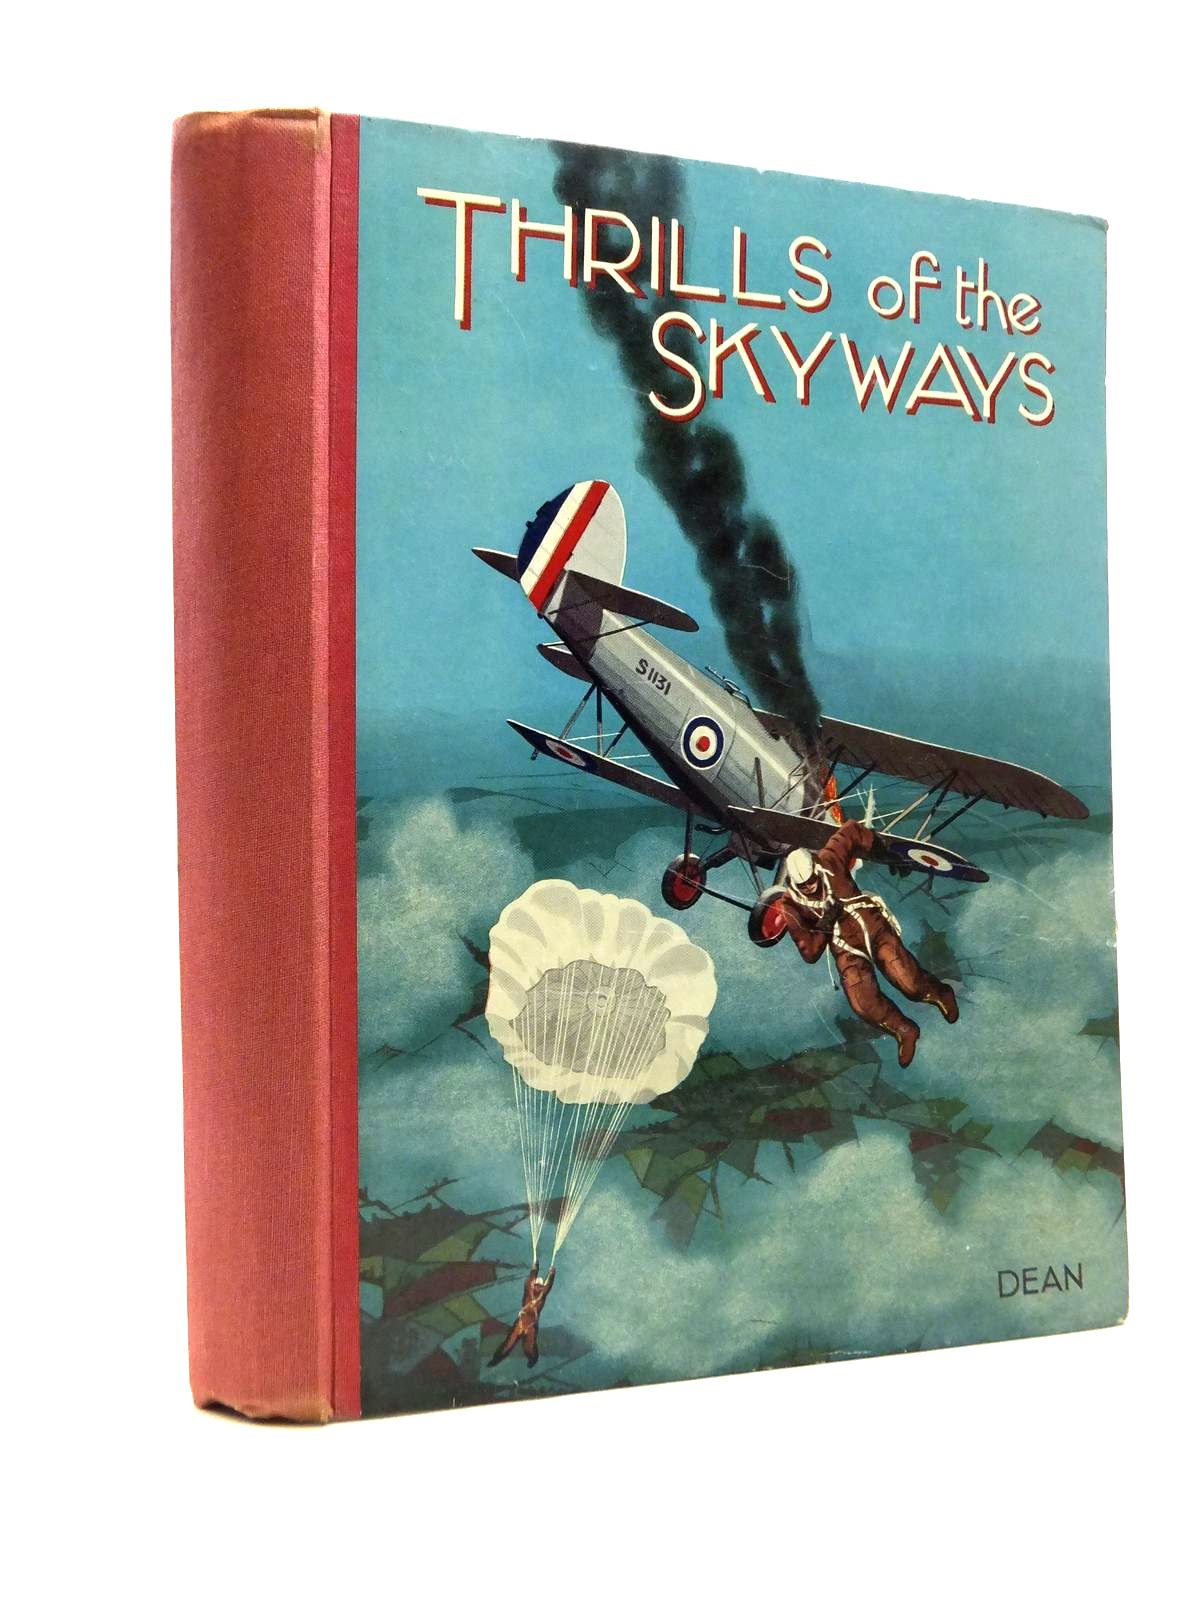 Photo of THRILLS OF THE SKYWAYS published by Dean & Son Ltd. (STOCK CODE: 1208366)  for sale by Stella & Rose's Books